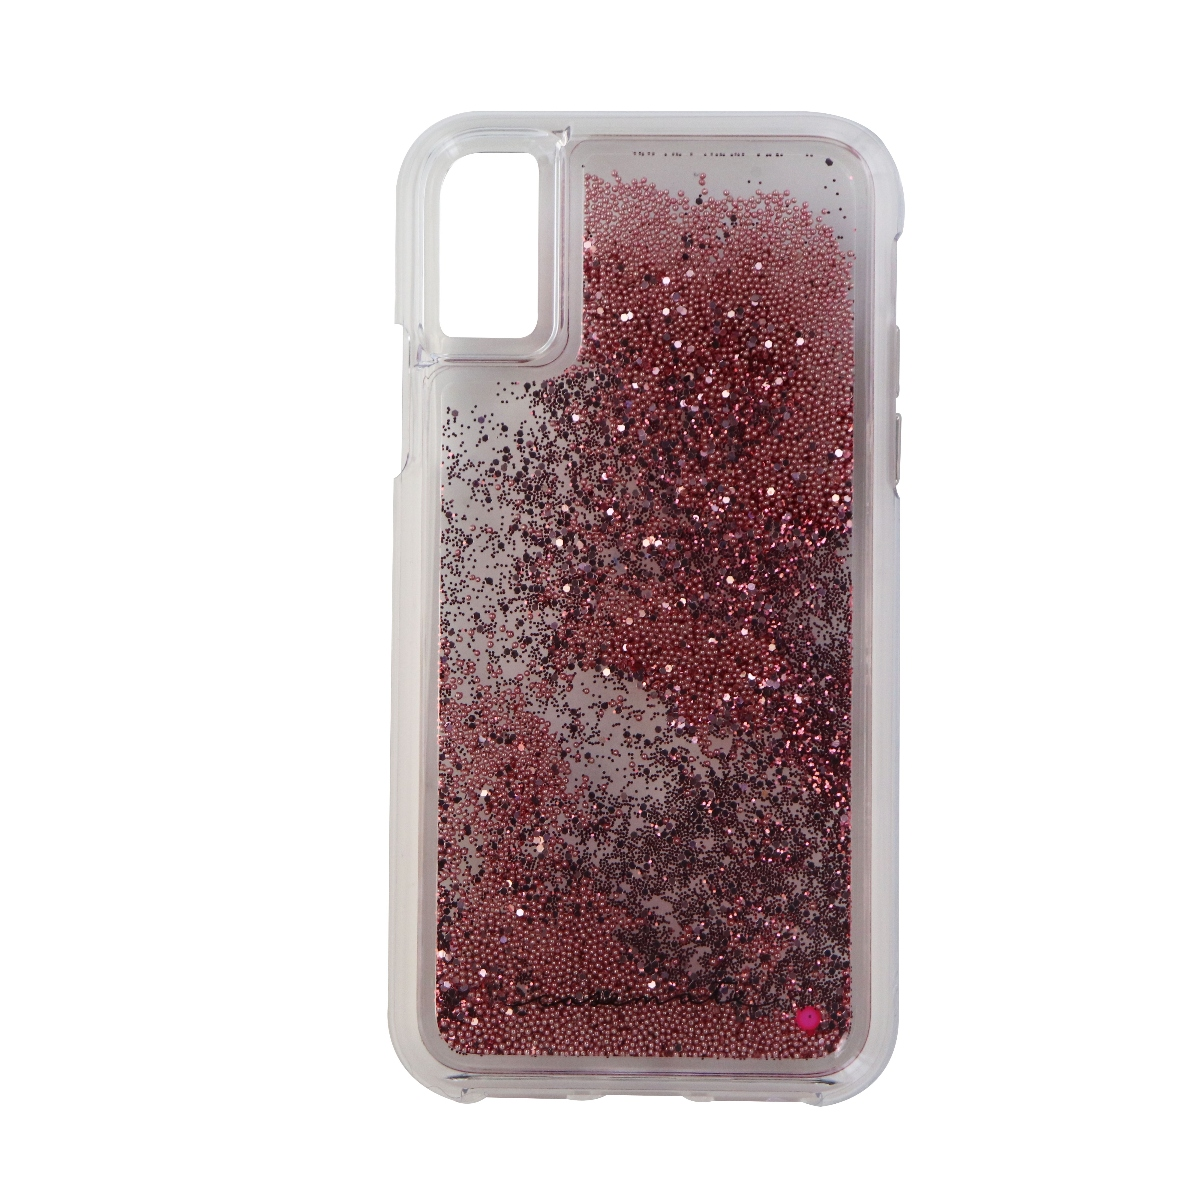 Case-Mate Waterfall Series Case for Apple iPhone X 10 - Clear/Pink Glitter